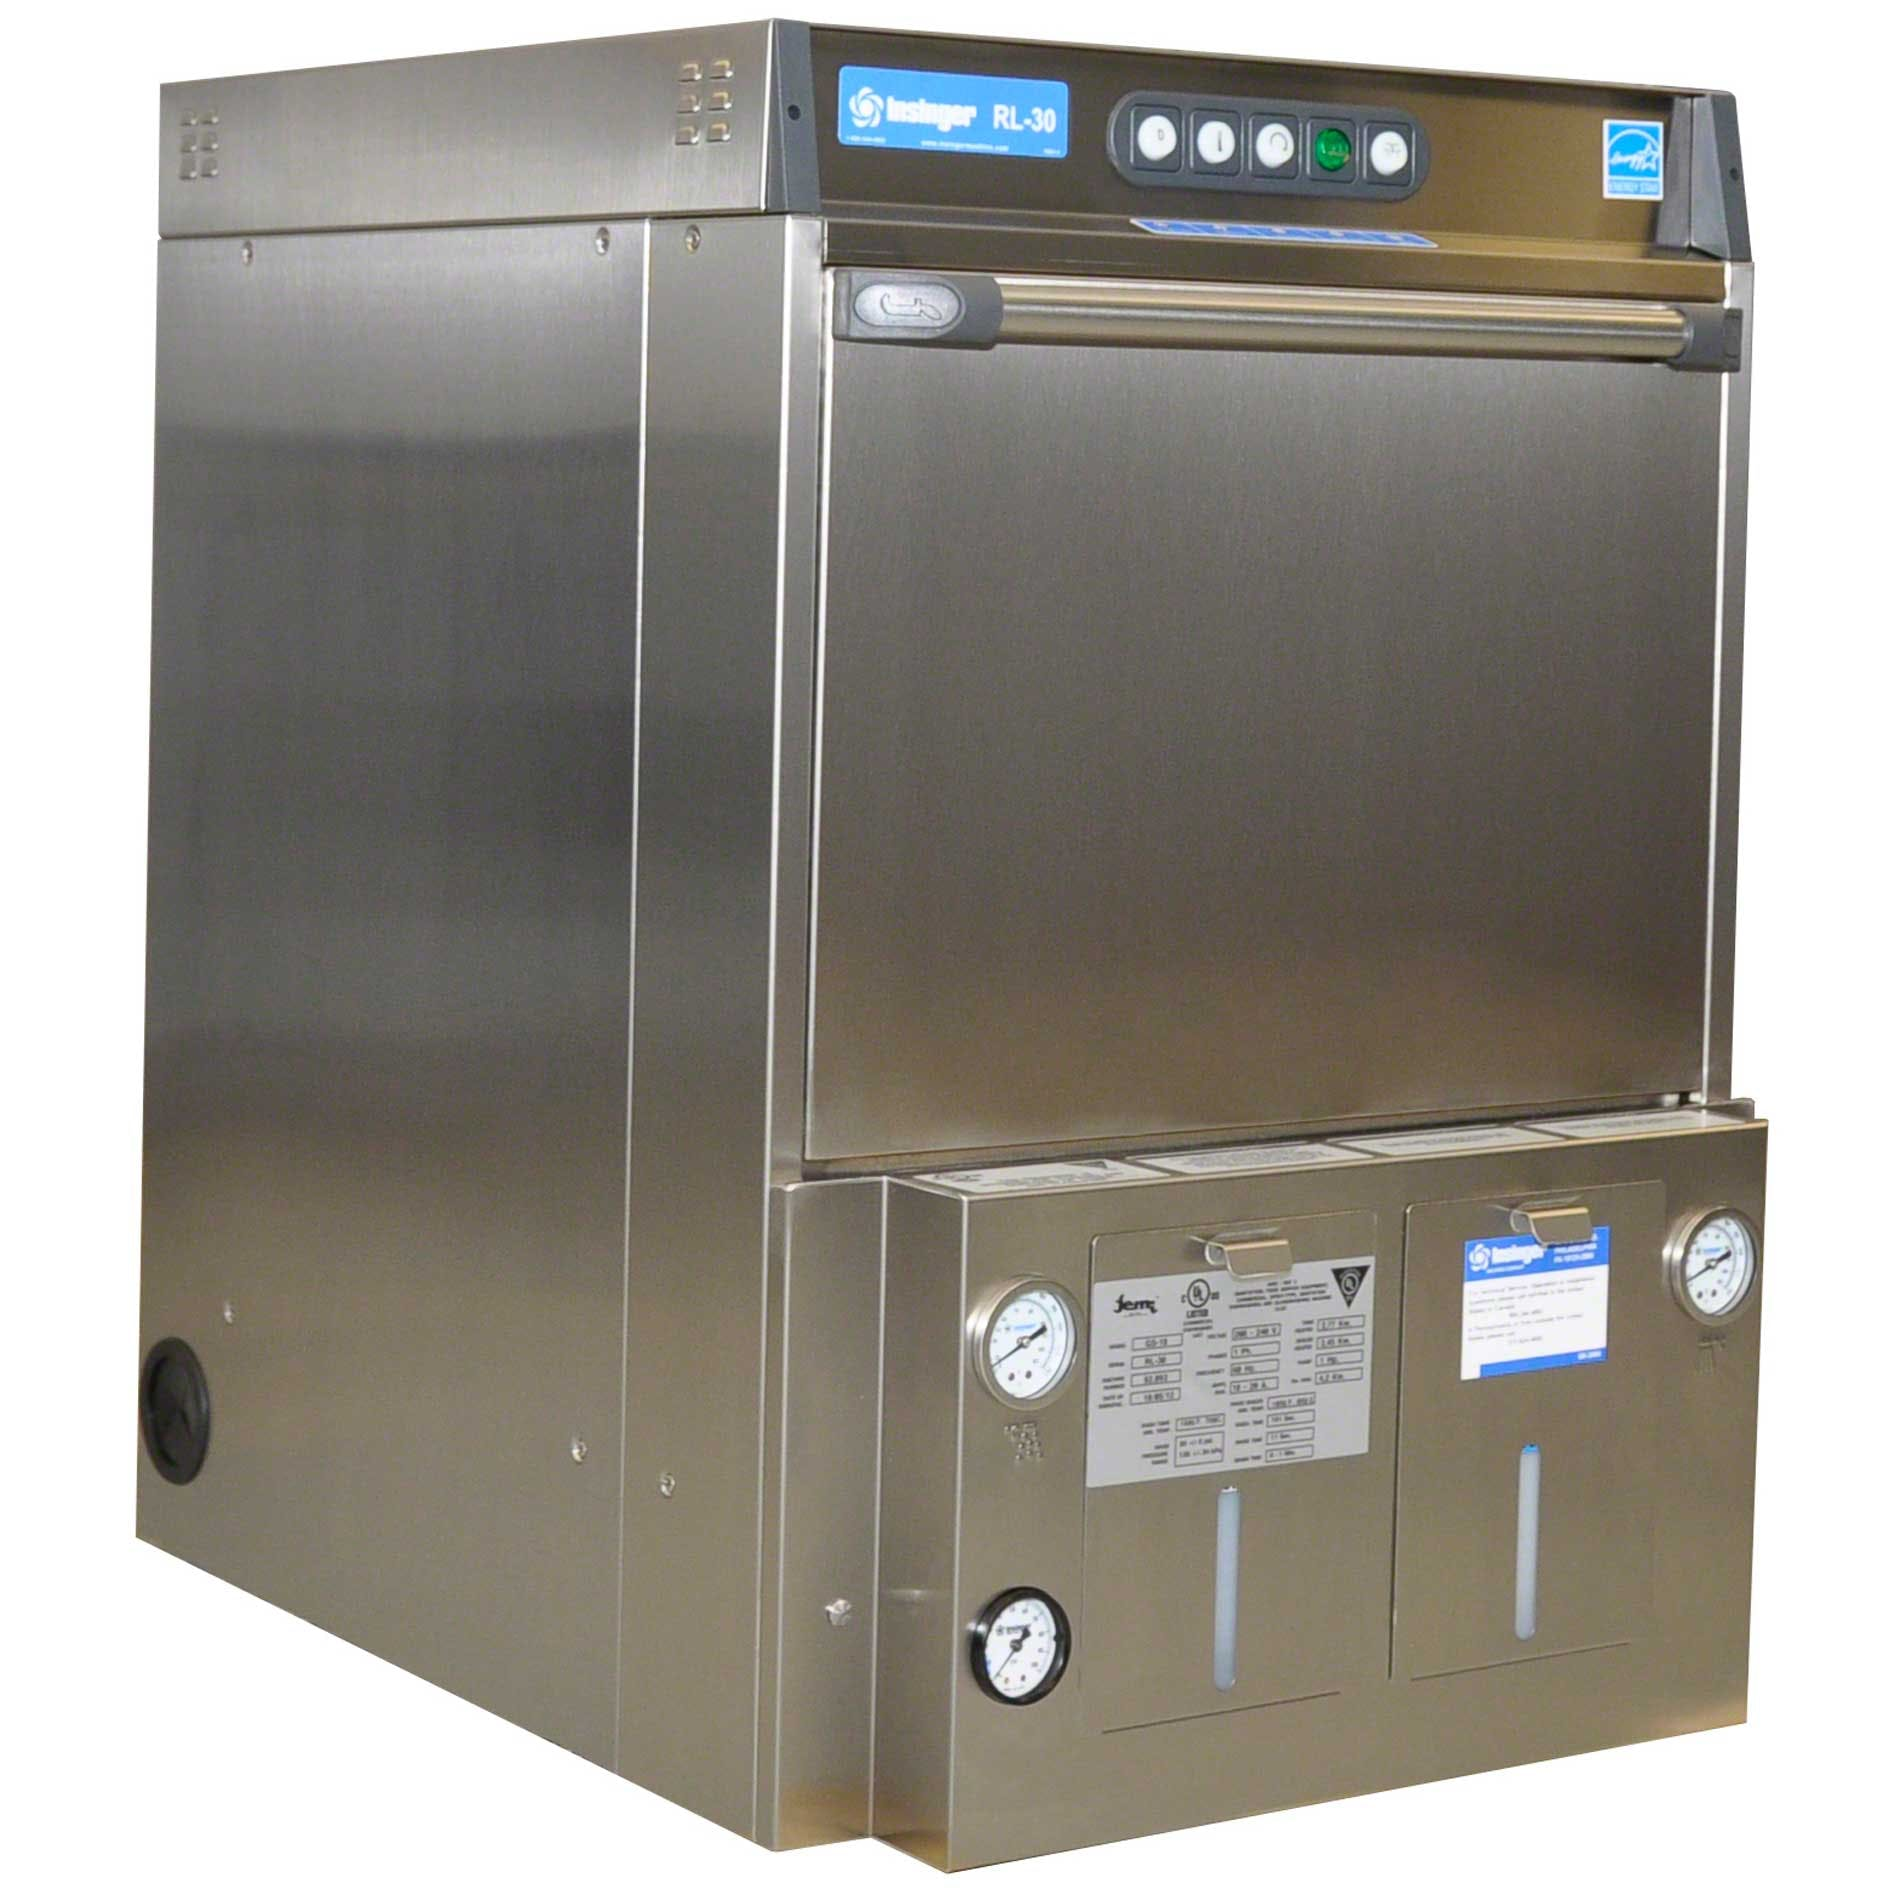 Insinger - RL30 30 Rack/Hr Undercounter Dishwasher Commercial dishwasher sold by Food Service Warehouse